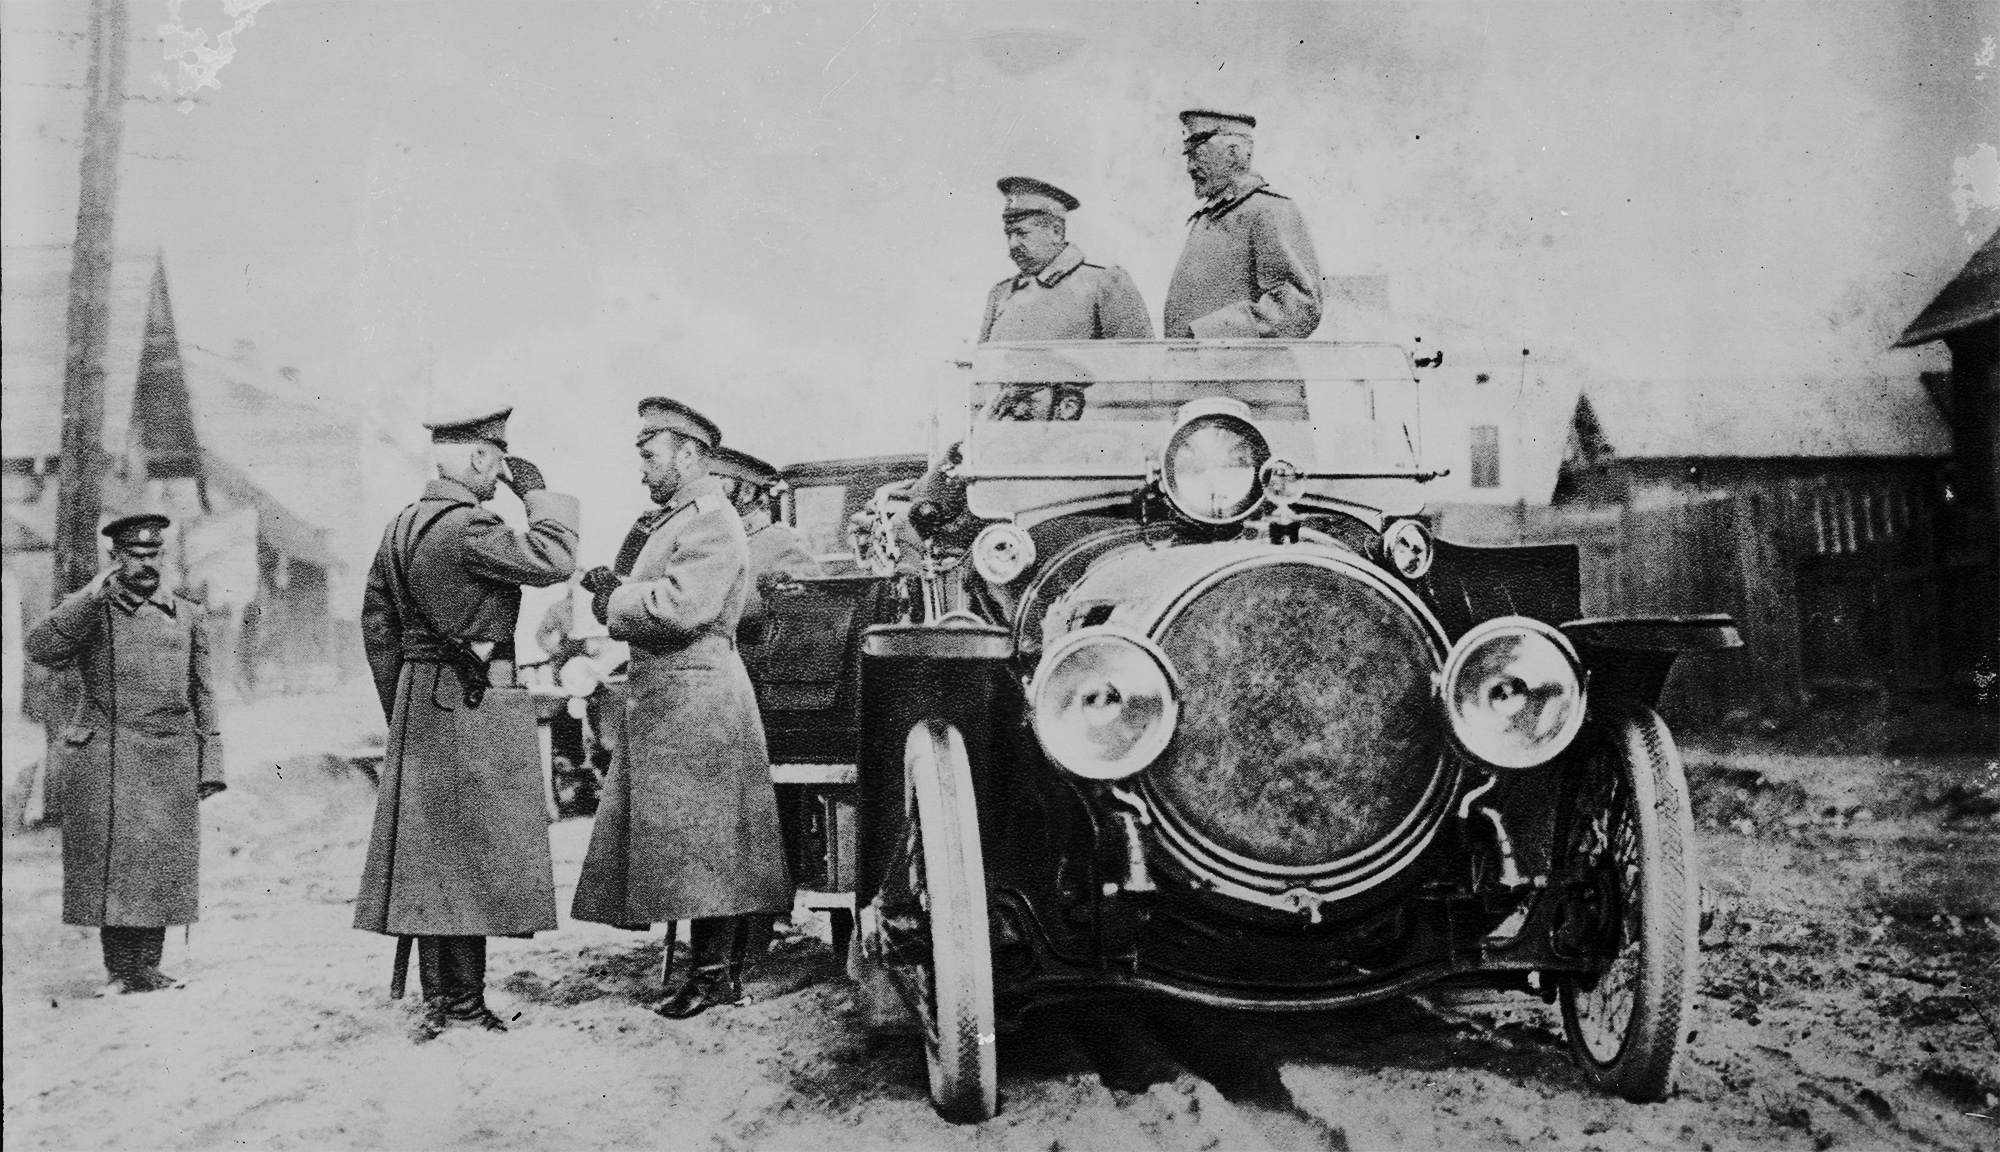 Tsar Nicholas II (third from left)visits the front, while his cousin, the army's commander-in-chief Grand Duke Nicholas, looks on (far right).